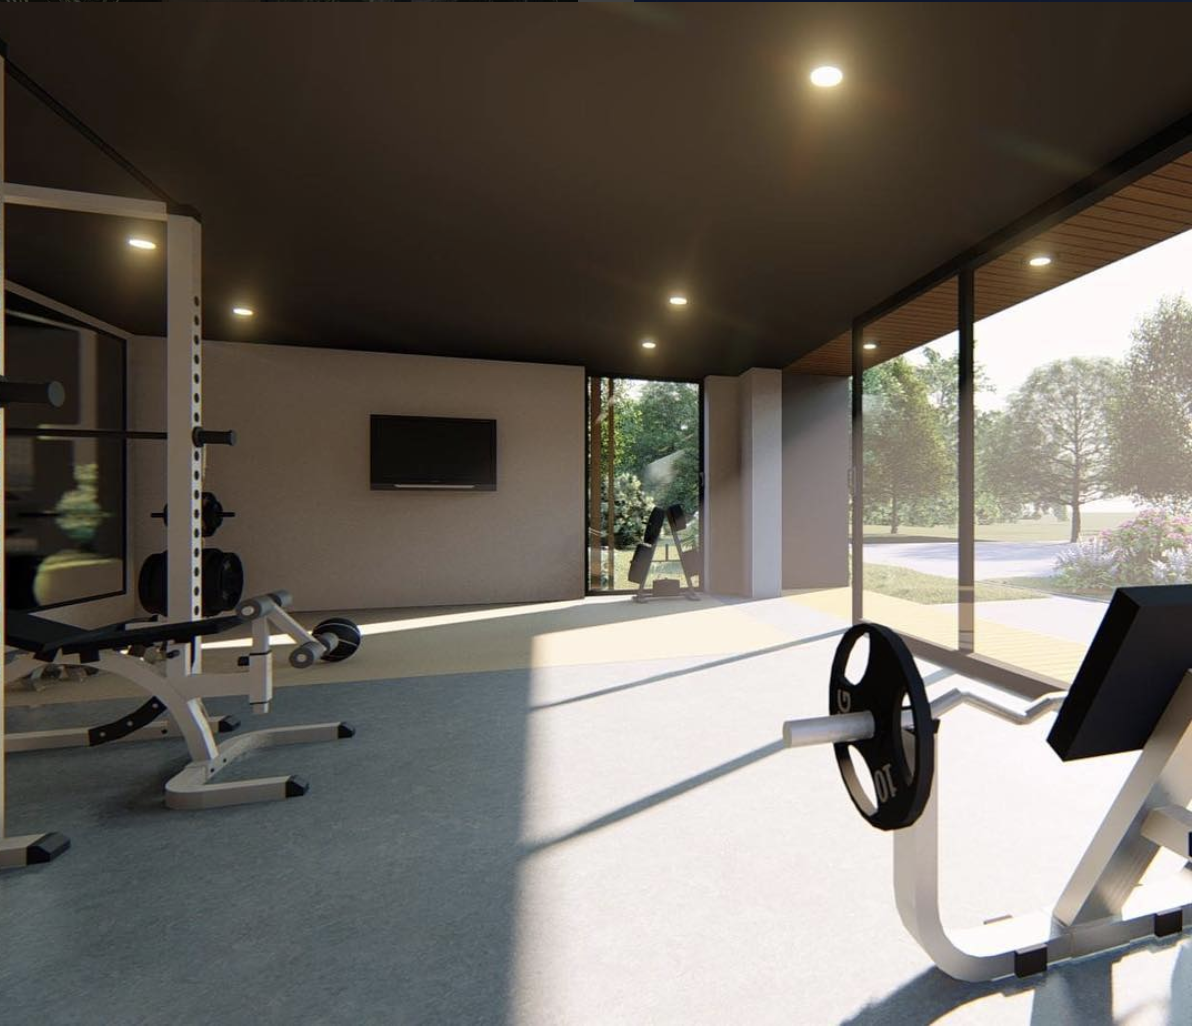 Smartbespokespacesour latest gym garden room for a client in